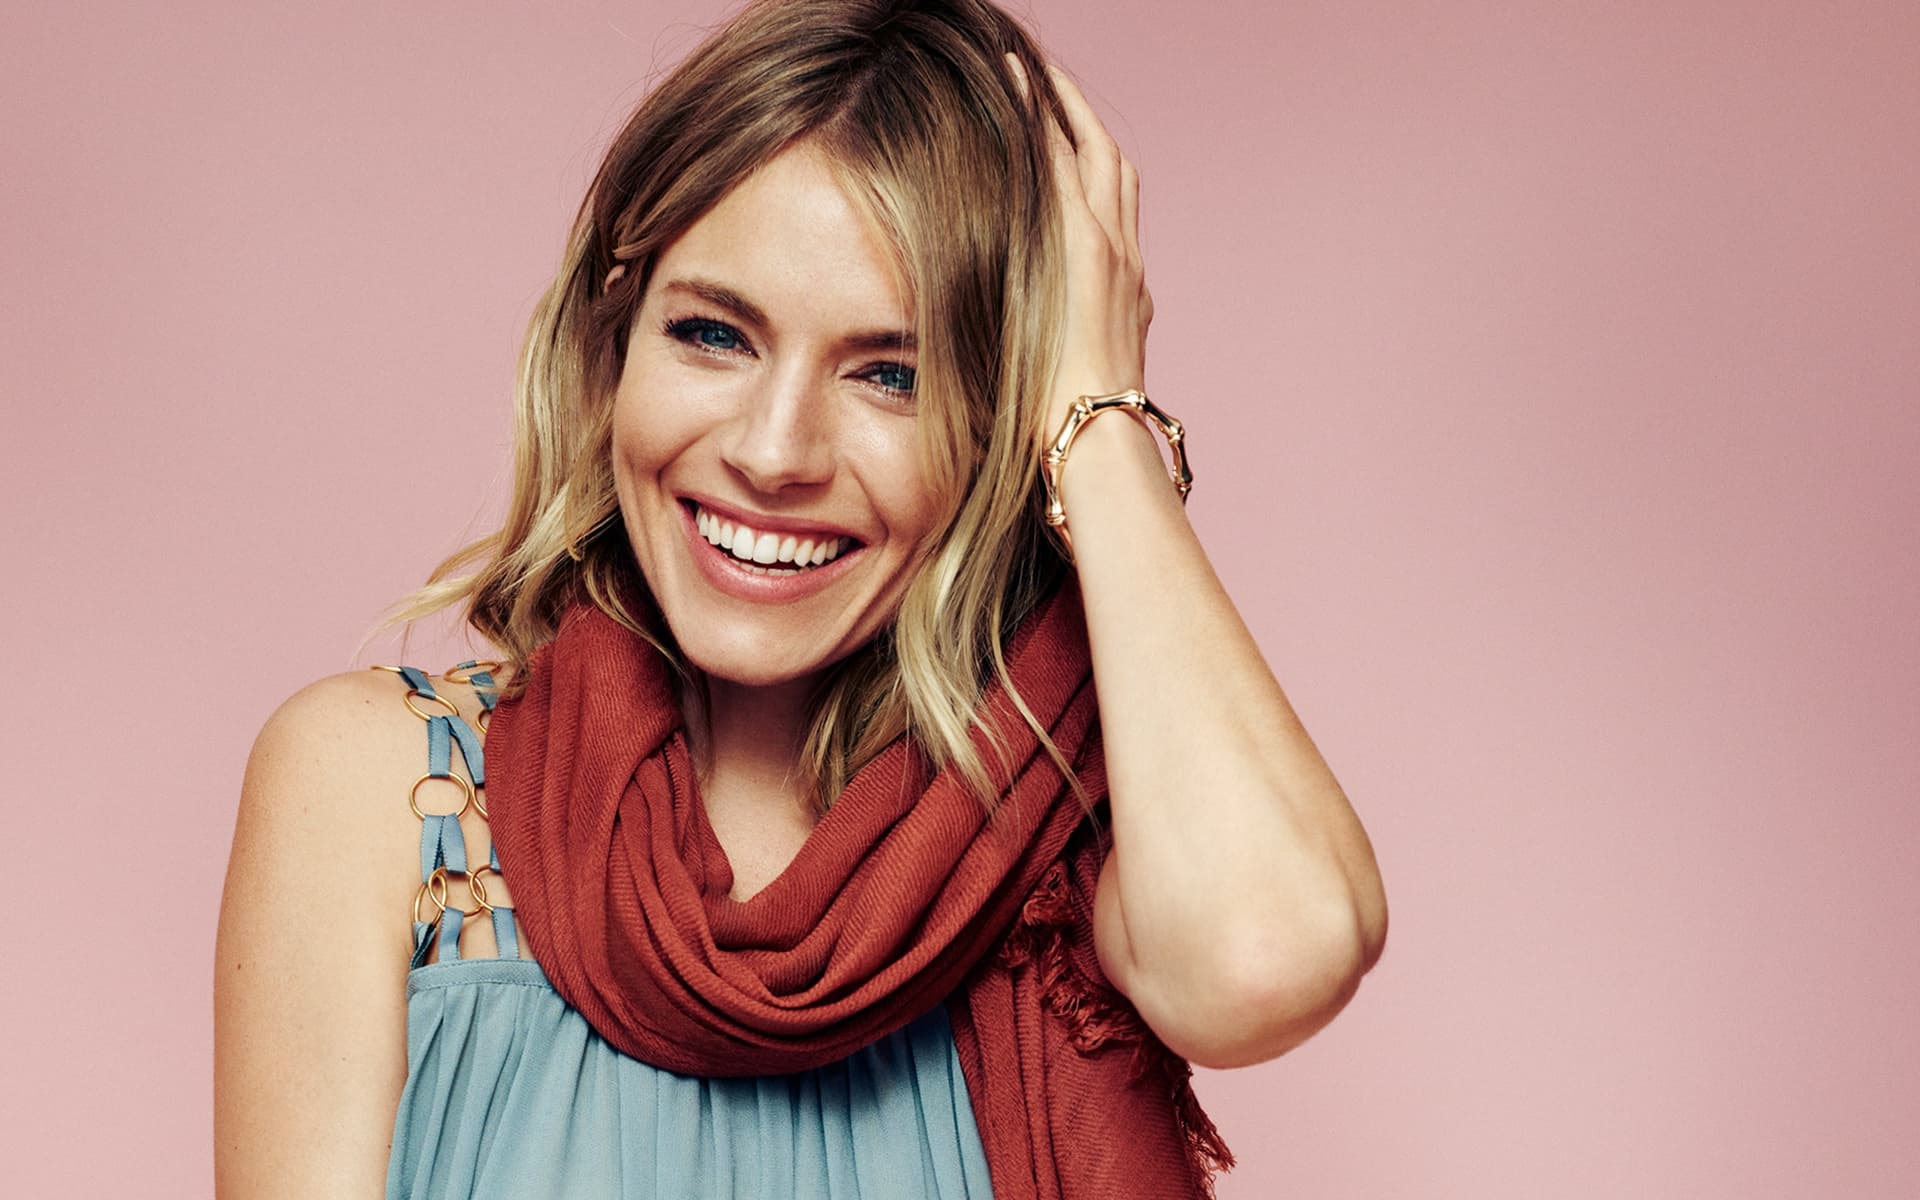 Who is Sienna Miller Dating?